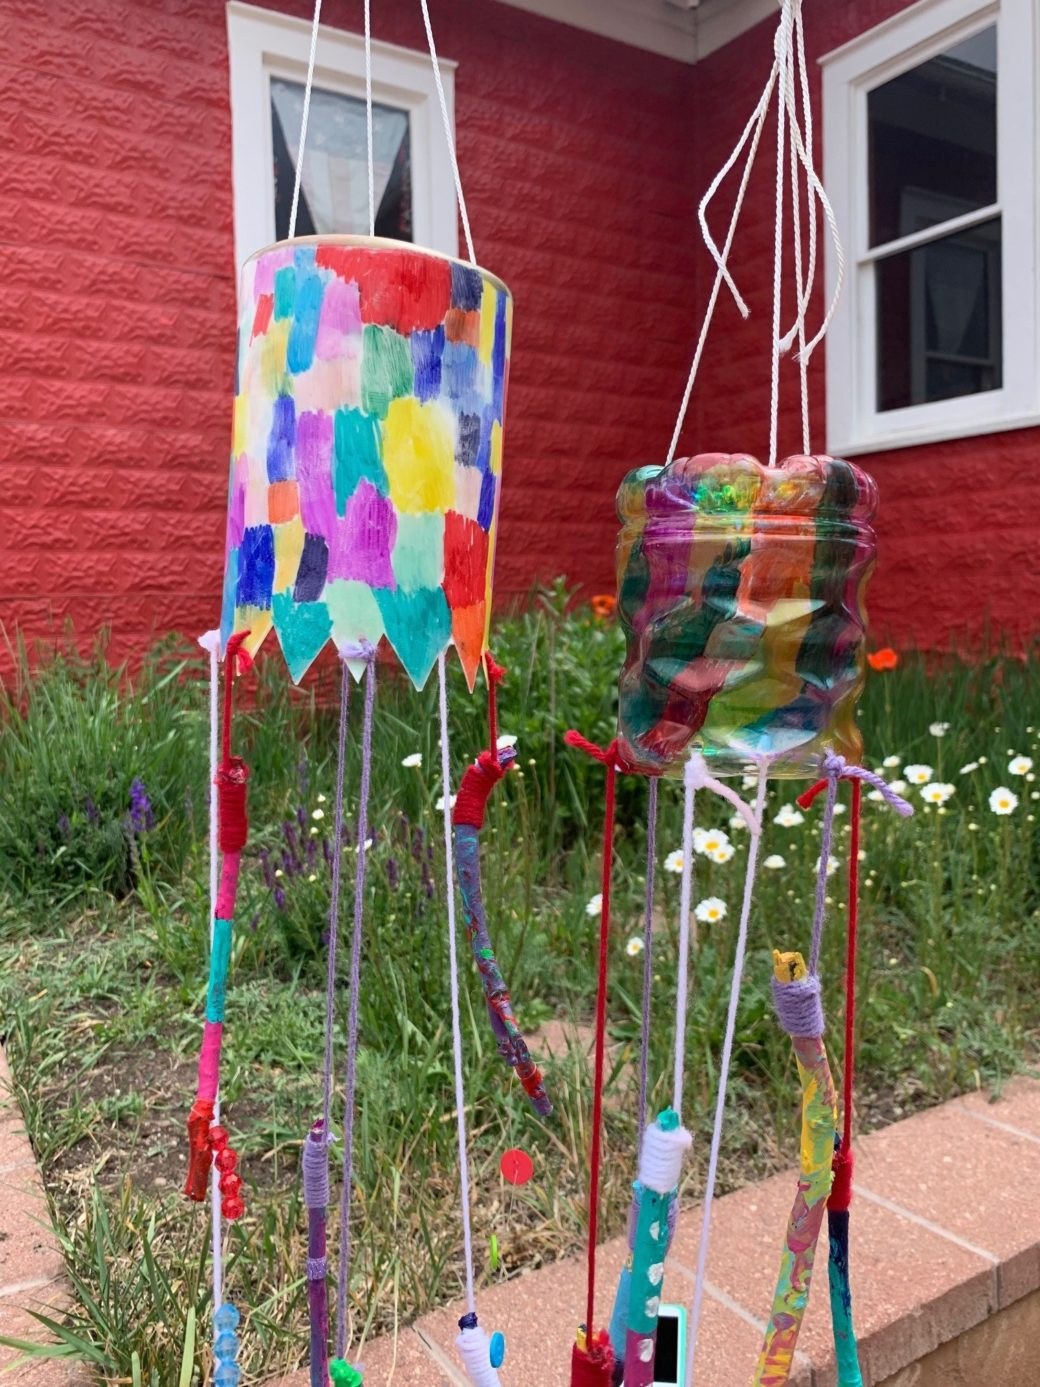 Two colorful outdoor sculptures hang vertically in front of a red house